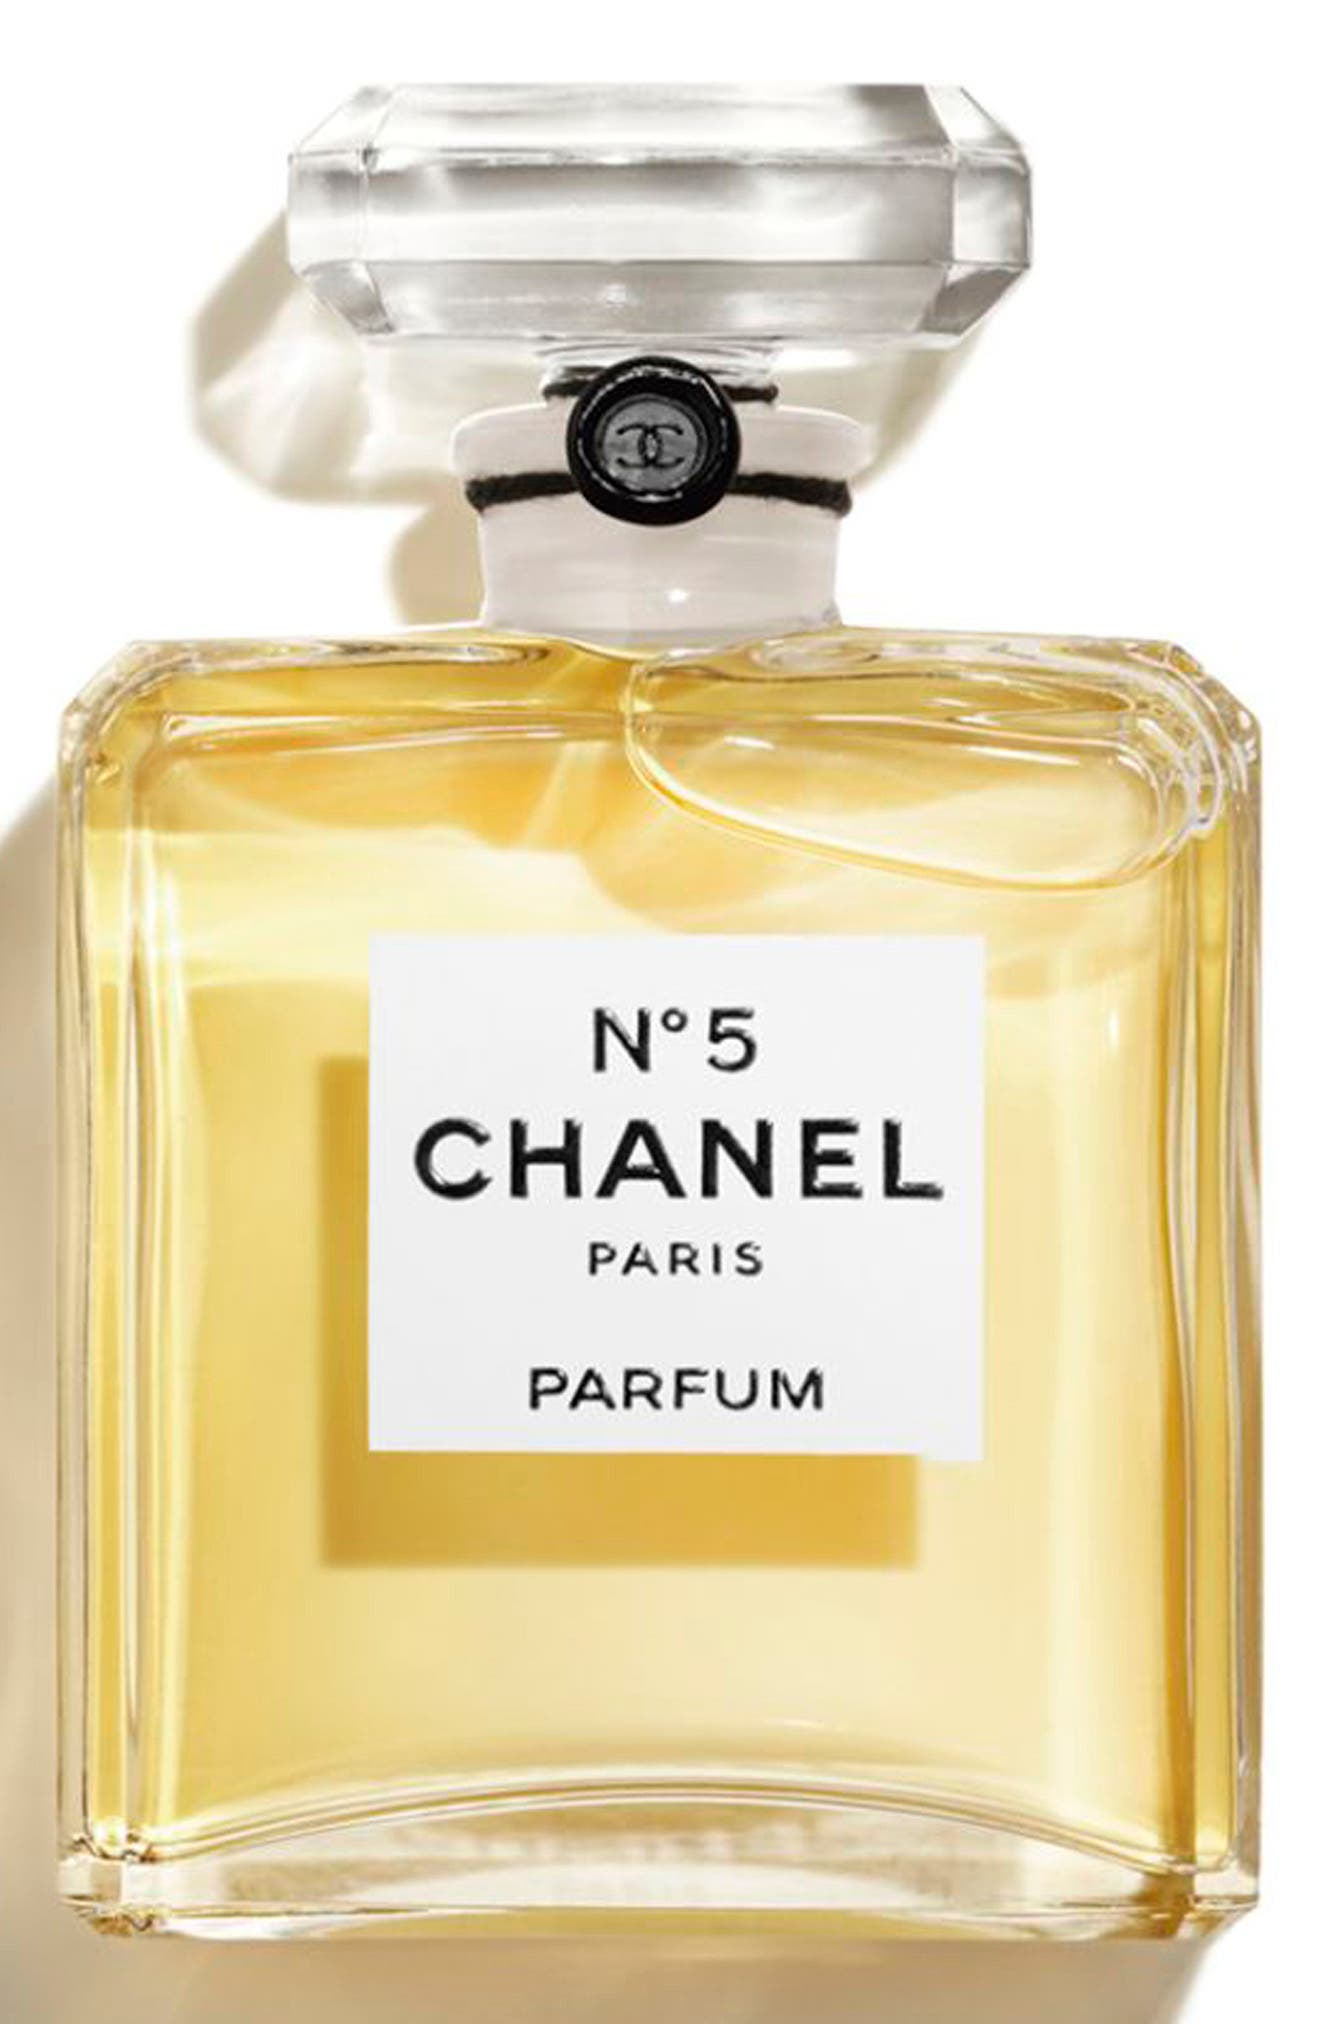 N5 Chanel Perfume Chanel Fragrance Nordstrom